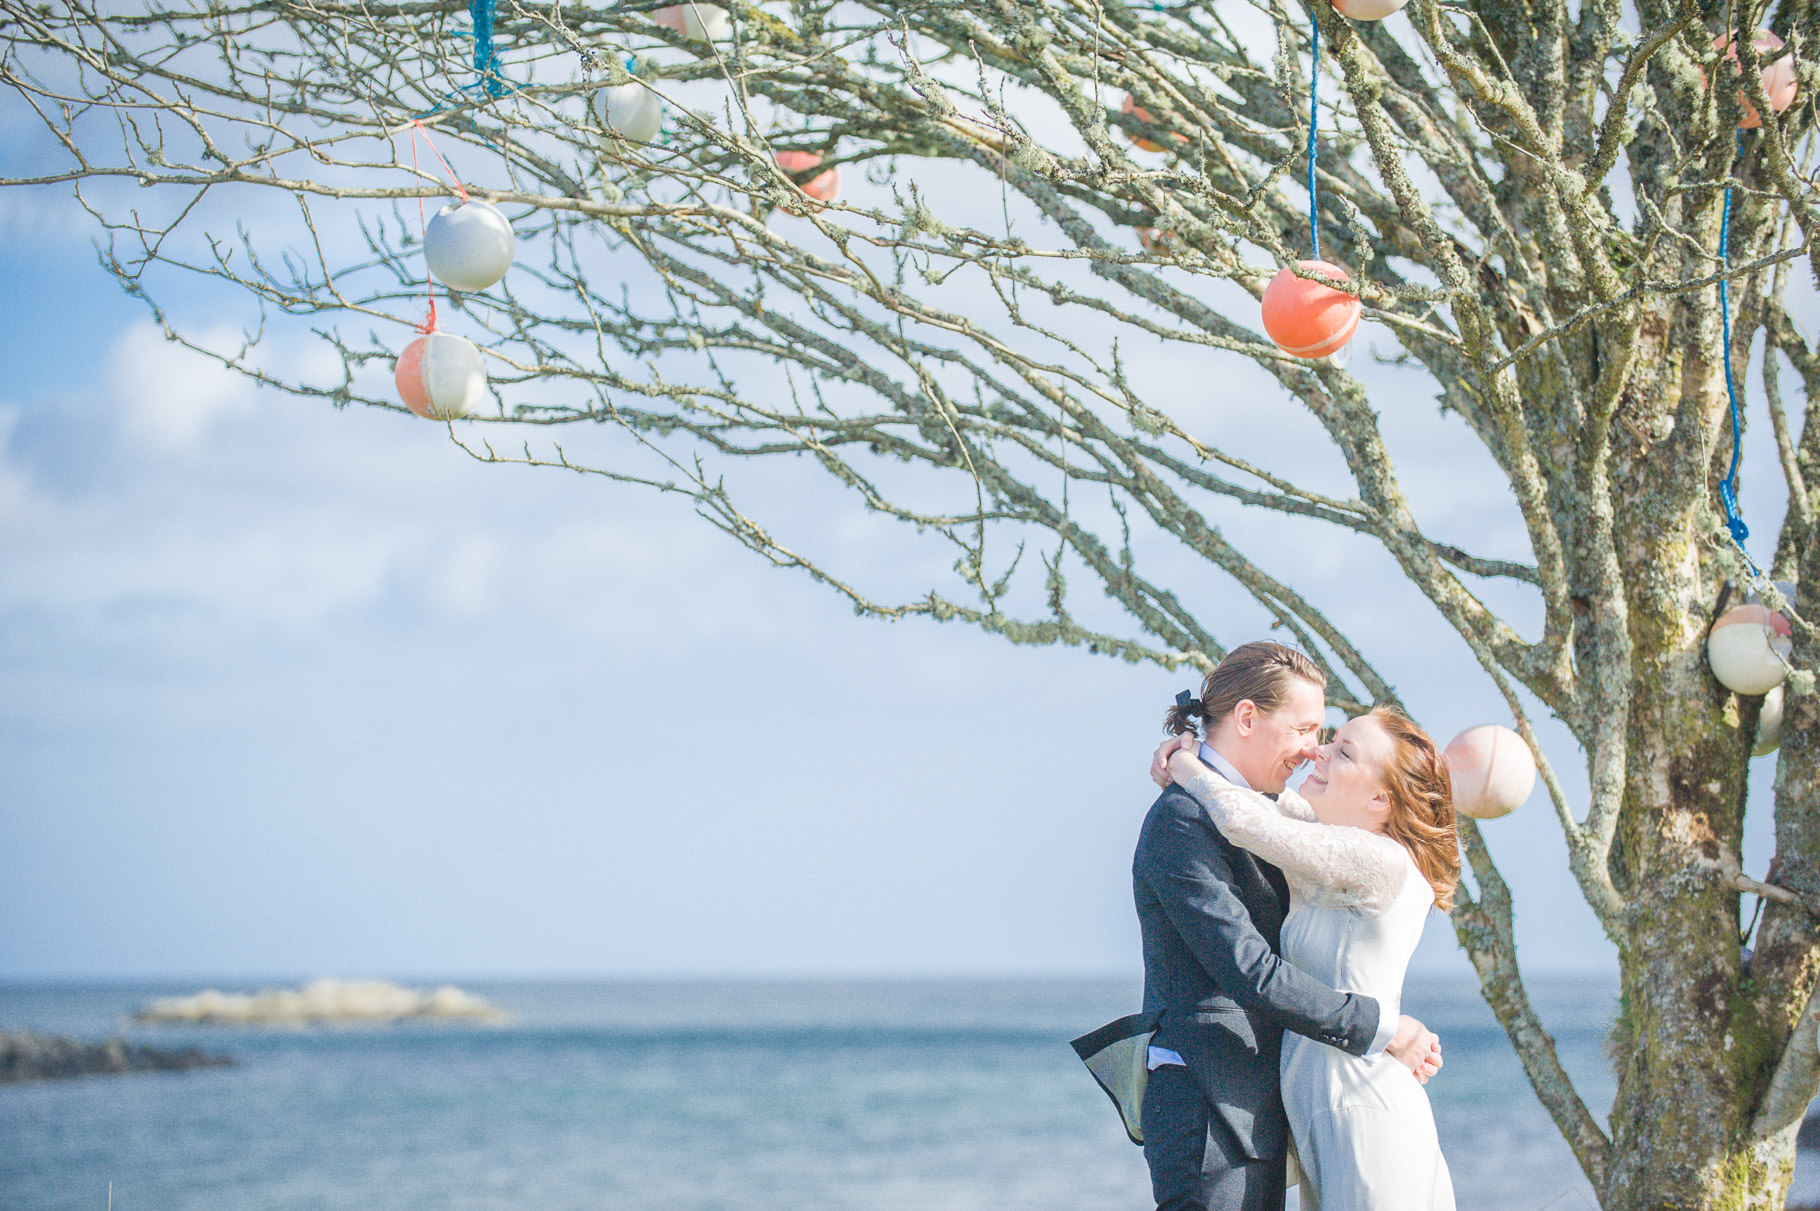 Stonefield Castle Wedding, Stonefield Castle Elopement, Elope to Scotland, Scottish Elopement